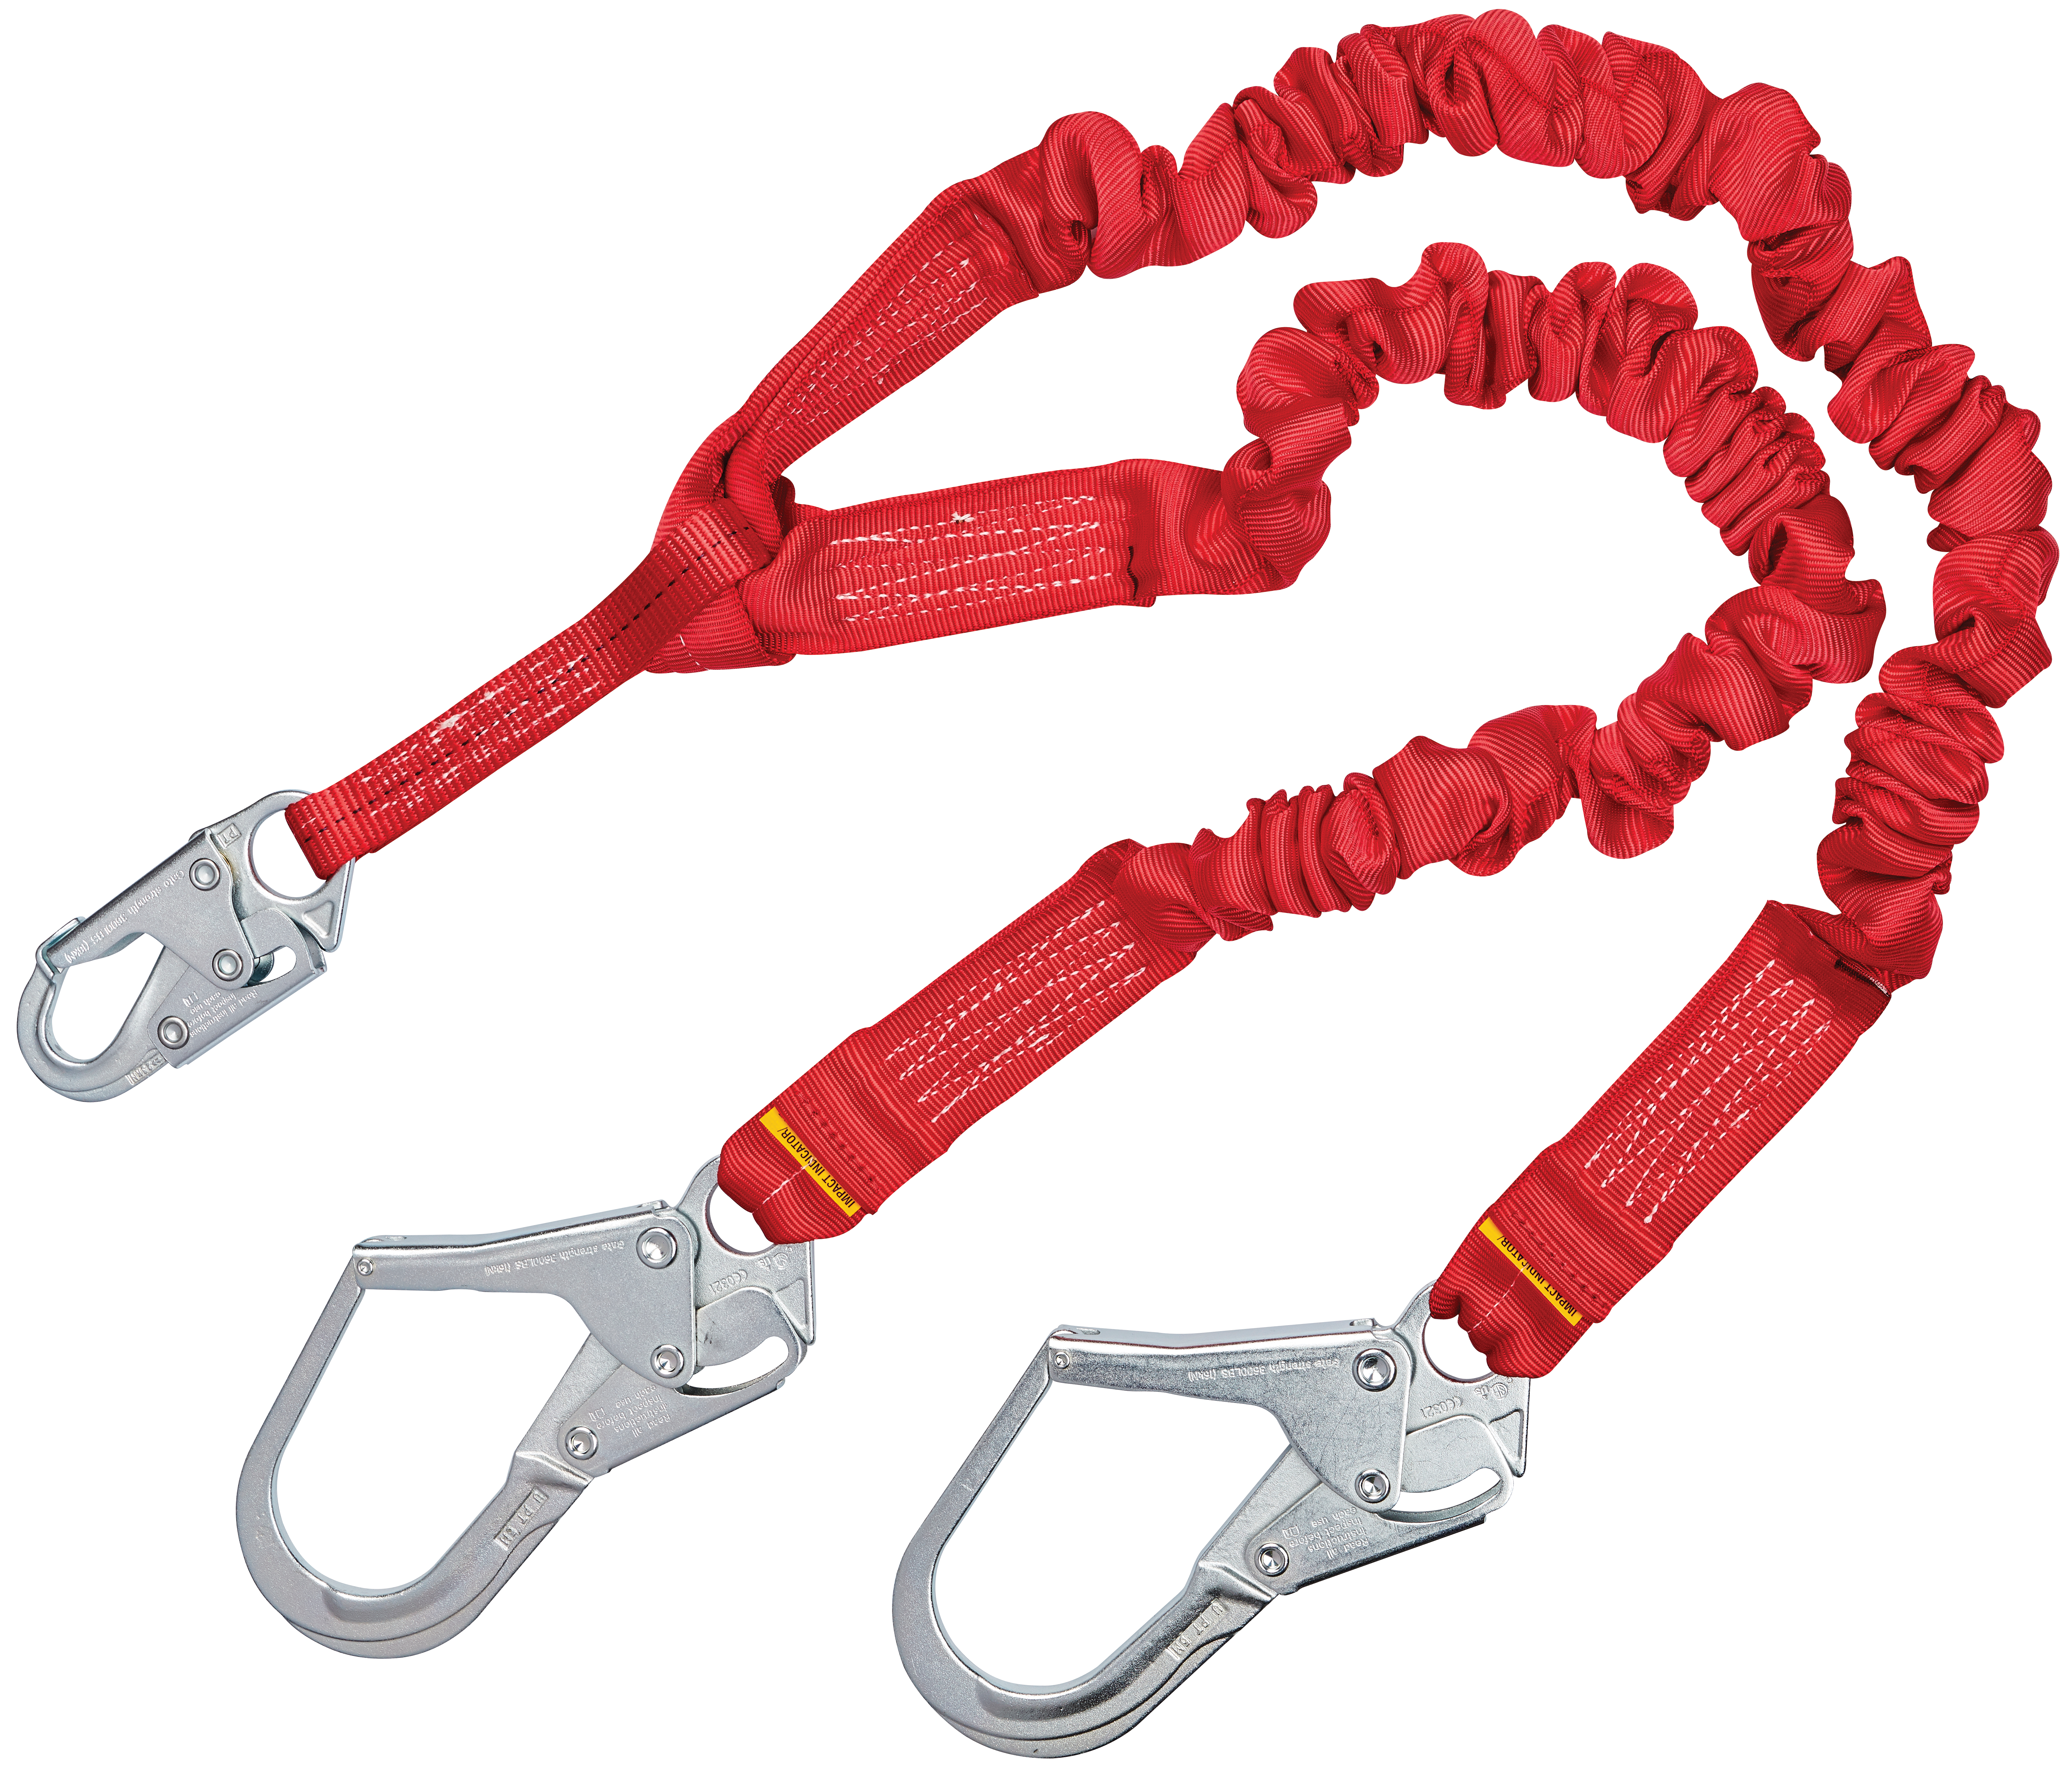 6-Foot Single Leg Safety Fall Protection Stretch Shock Absorbing Lanyard with Snap and Rebar Hook Connectors